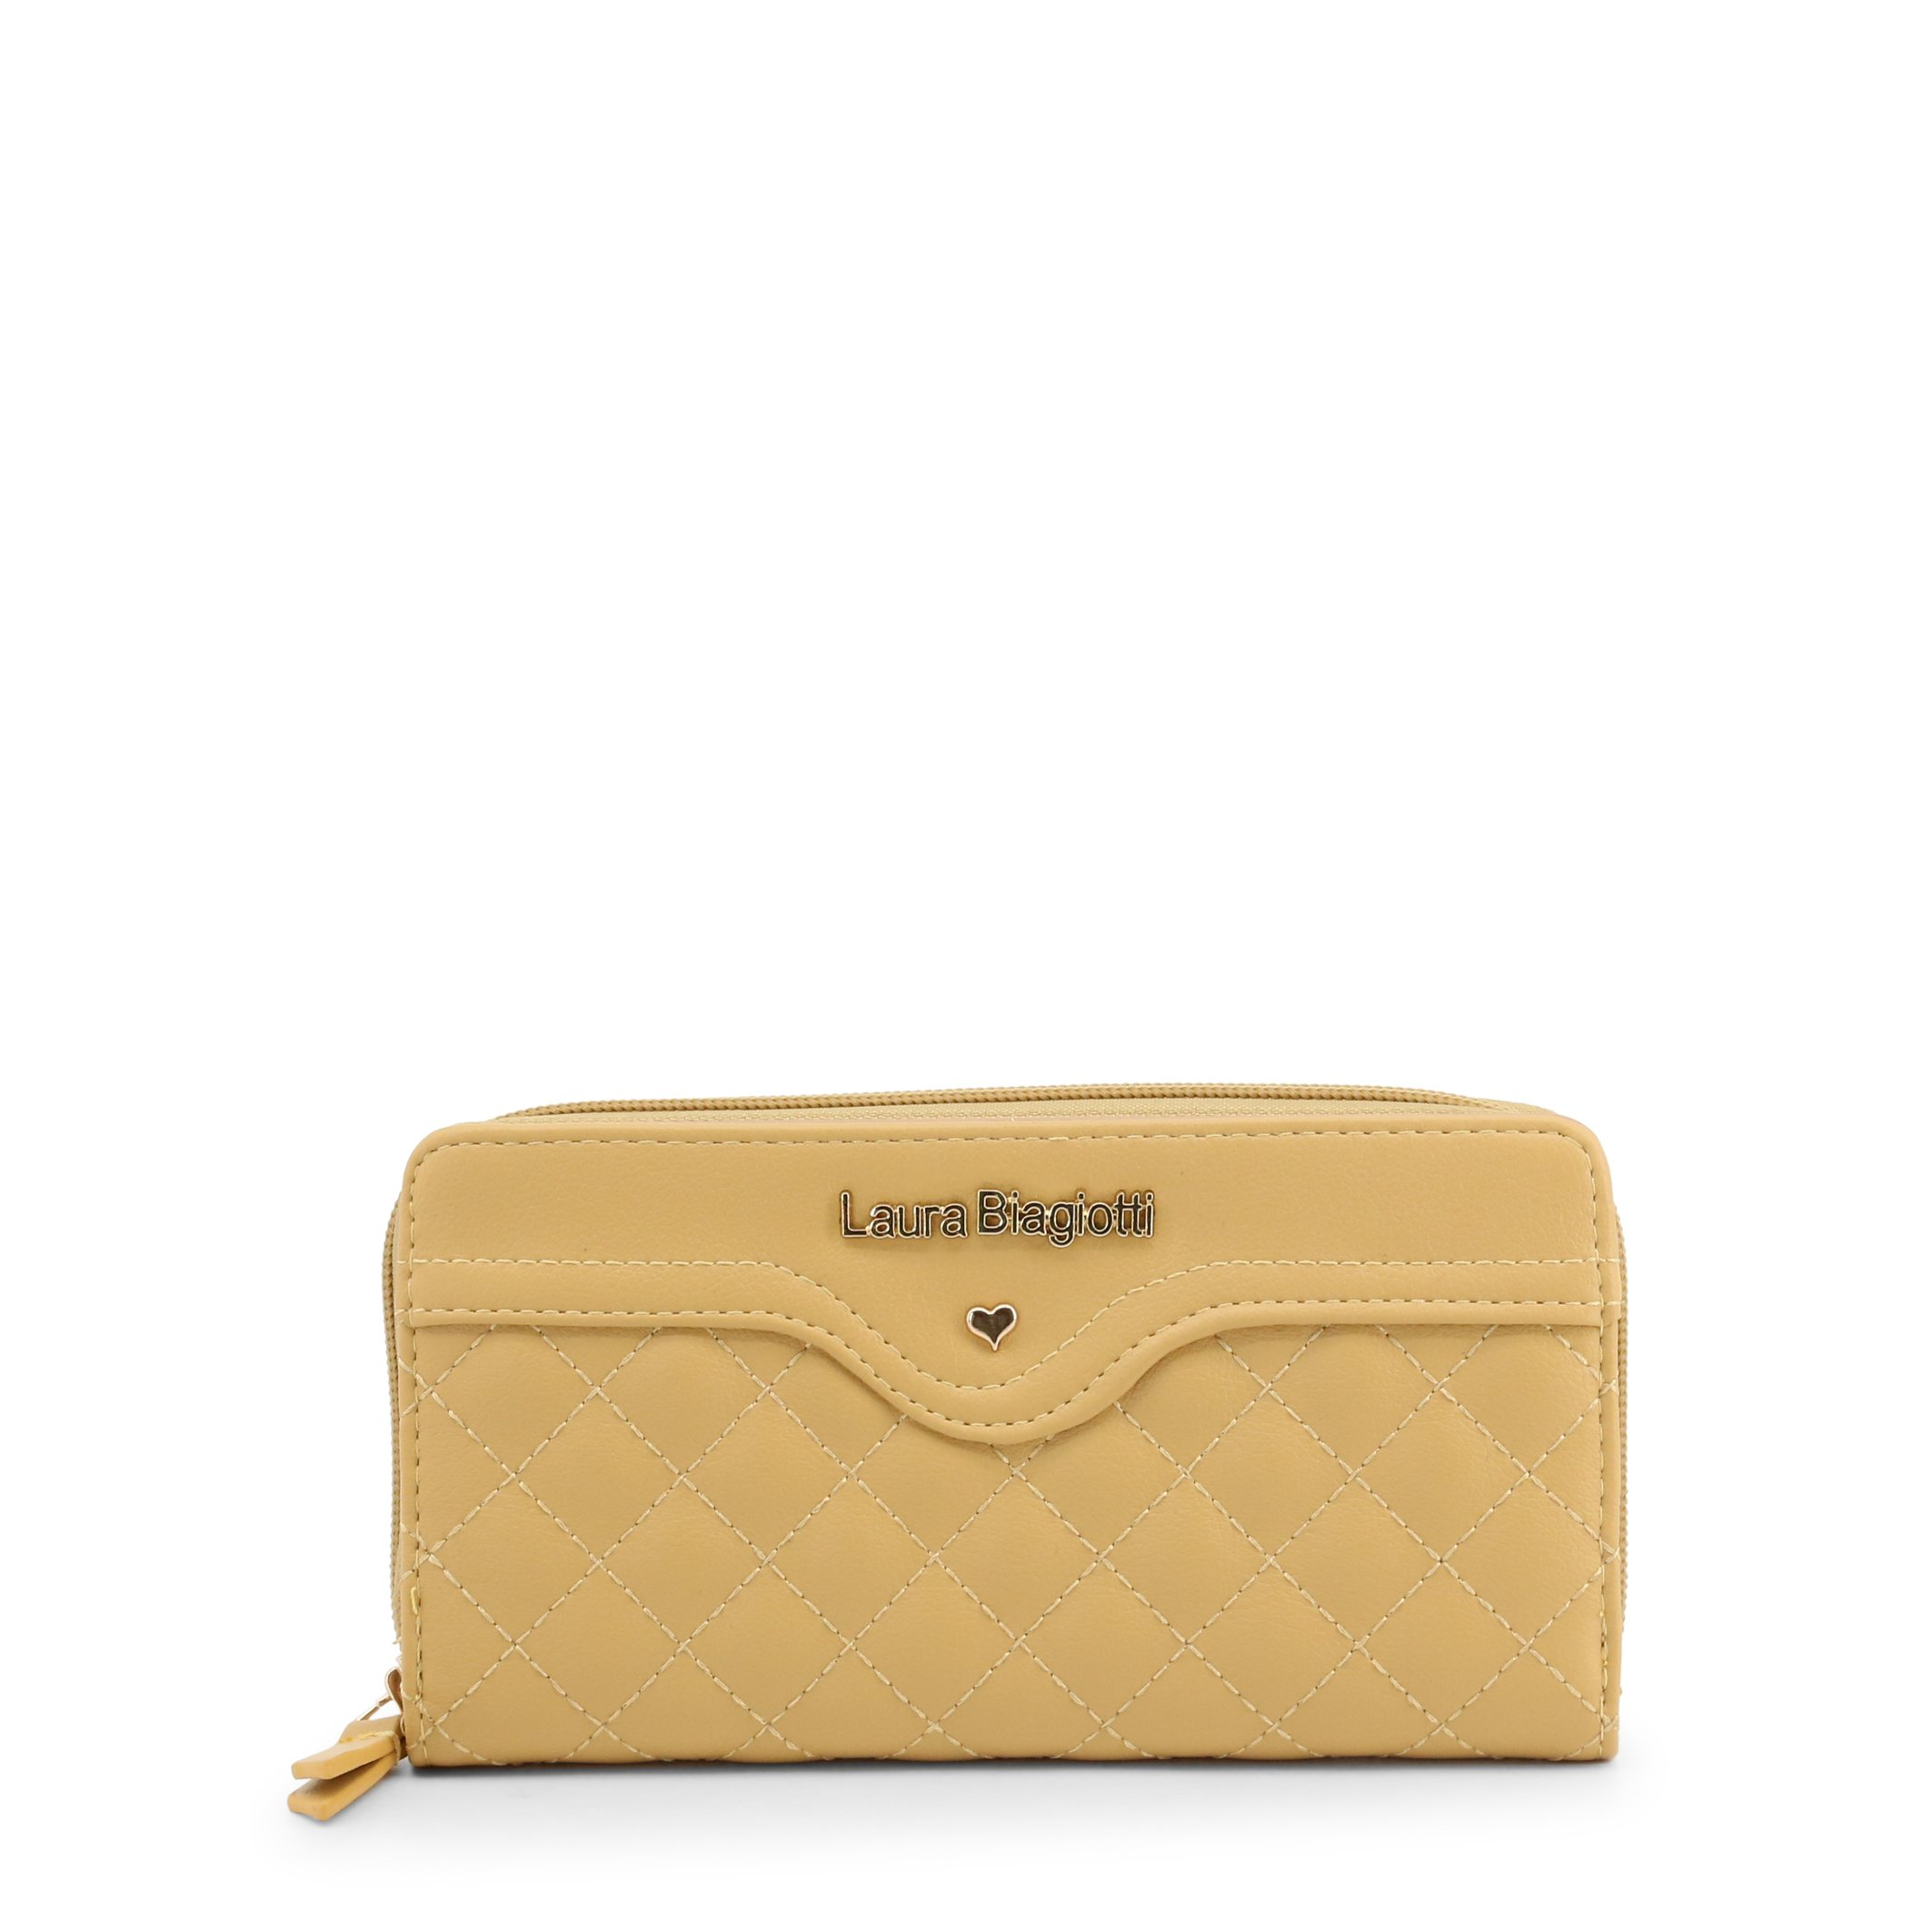 Laura Biagiotti Women's Wallet Various Colours Perkins_506-67 - yellow NOSIZE